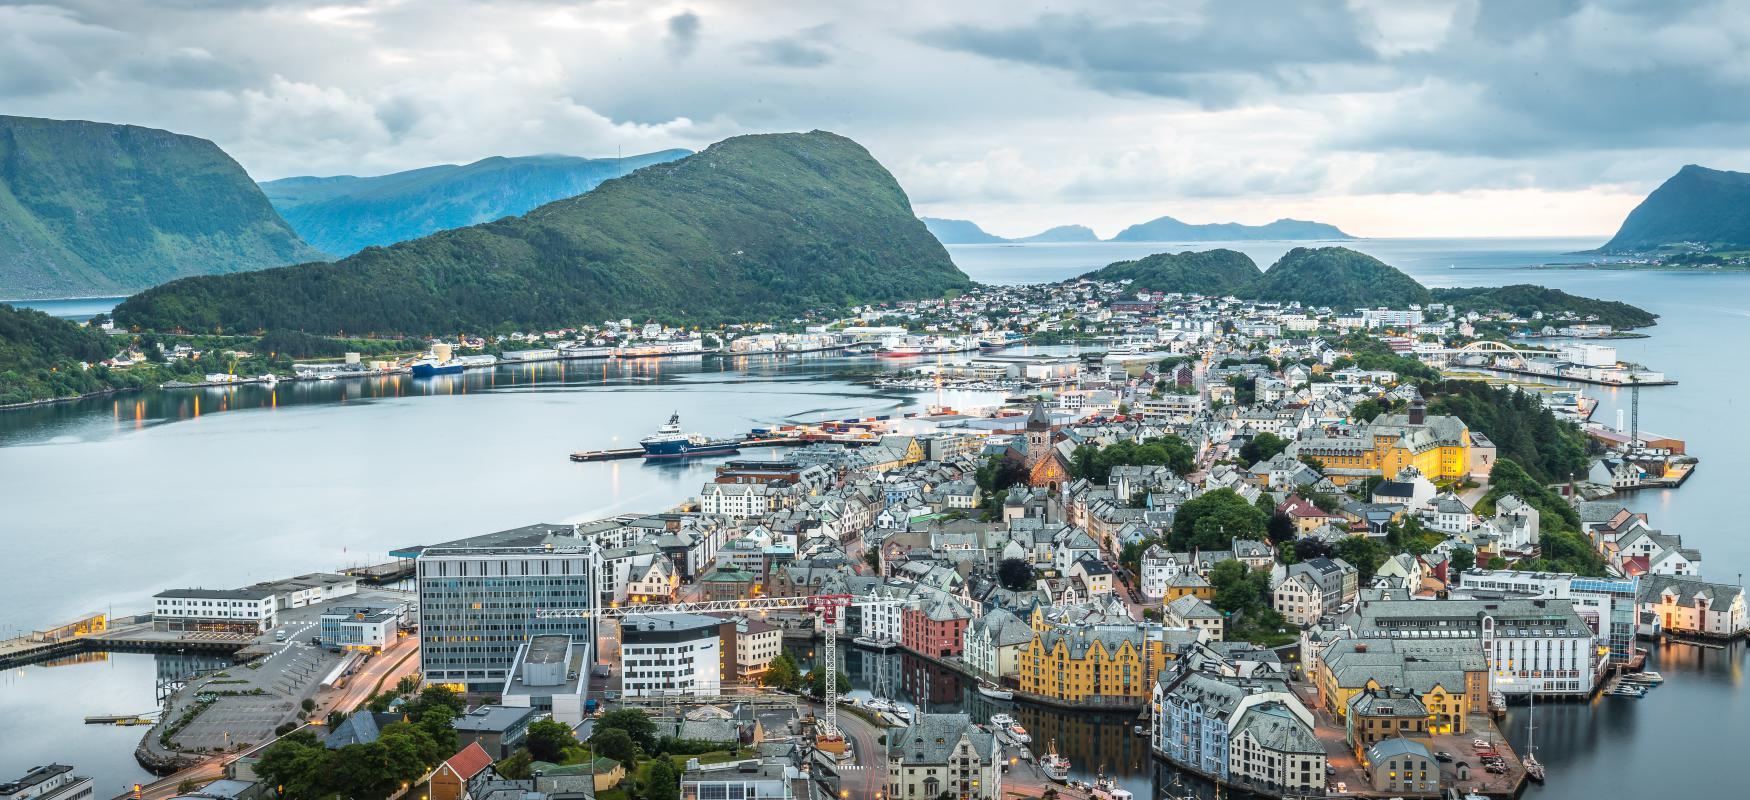 Birds view of Ålesund, Norway on a cloudy day